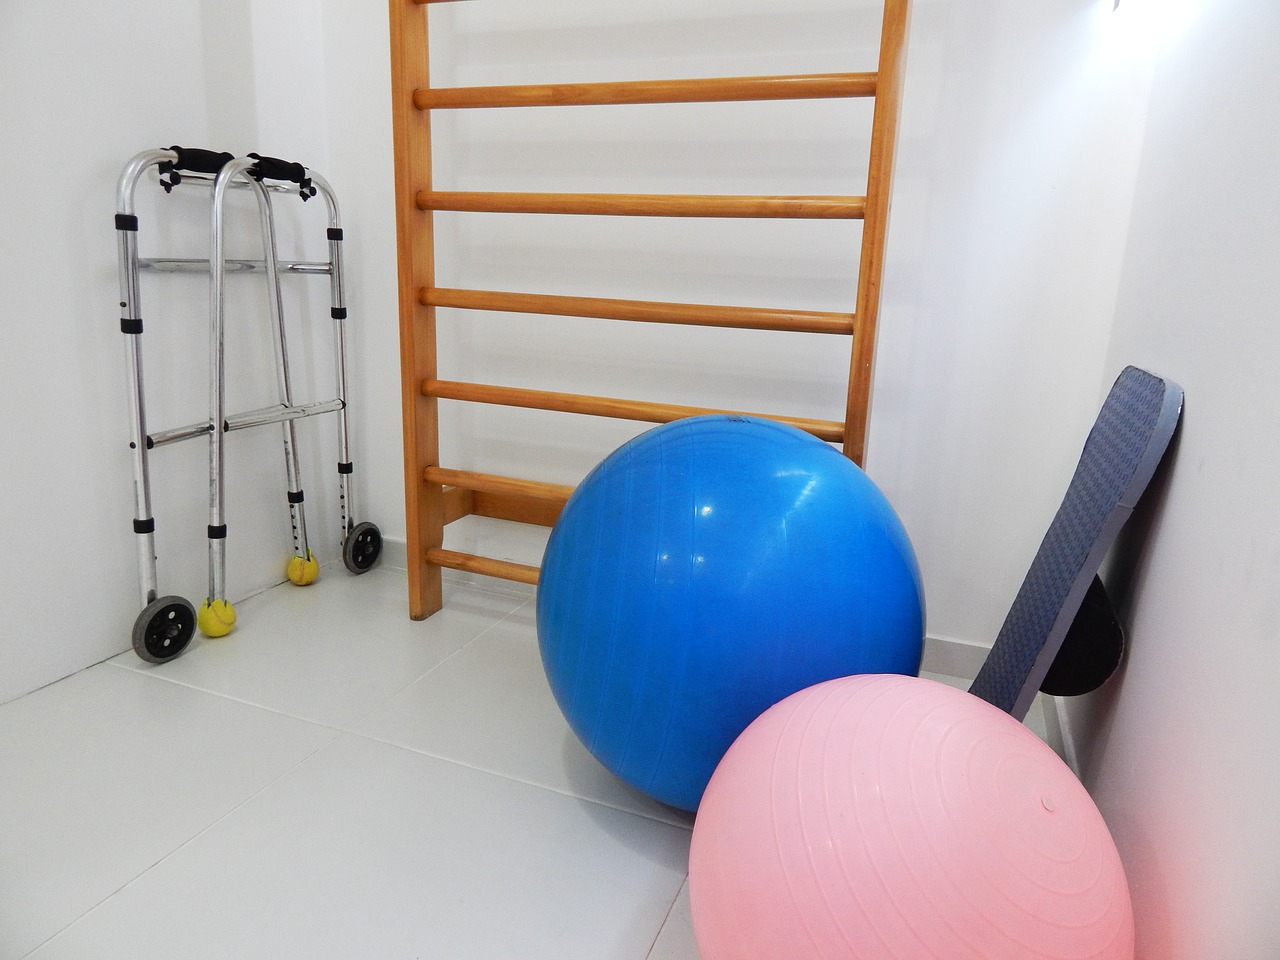 Walker, ladder, and exercise balls in a room